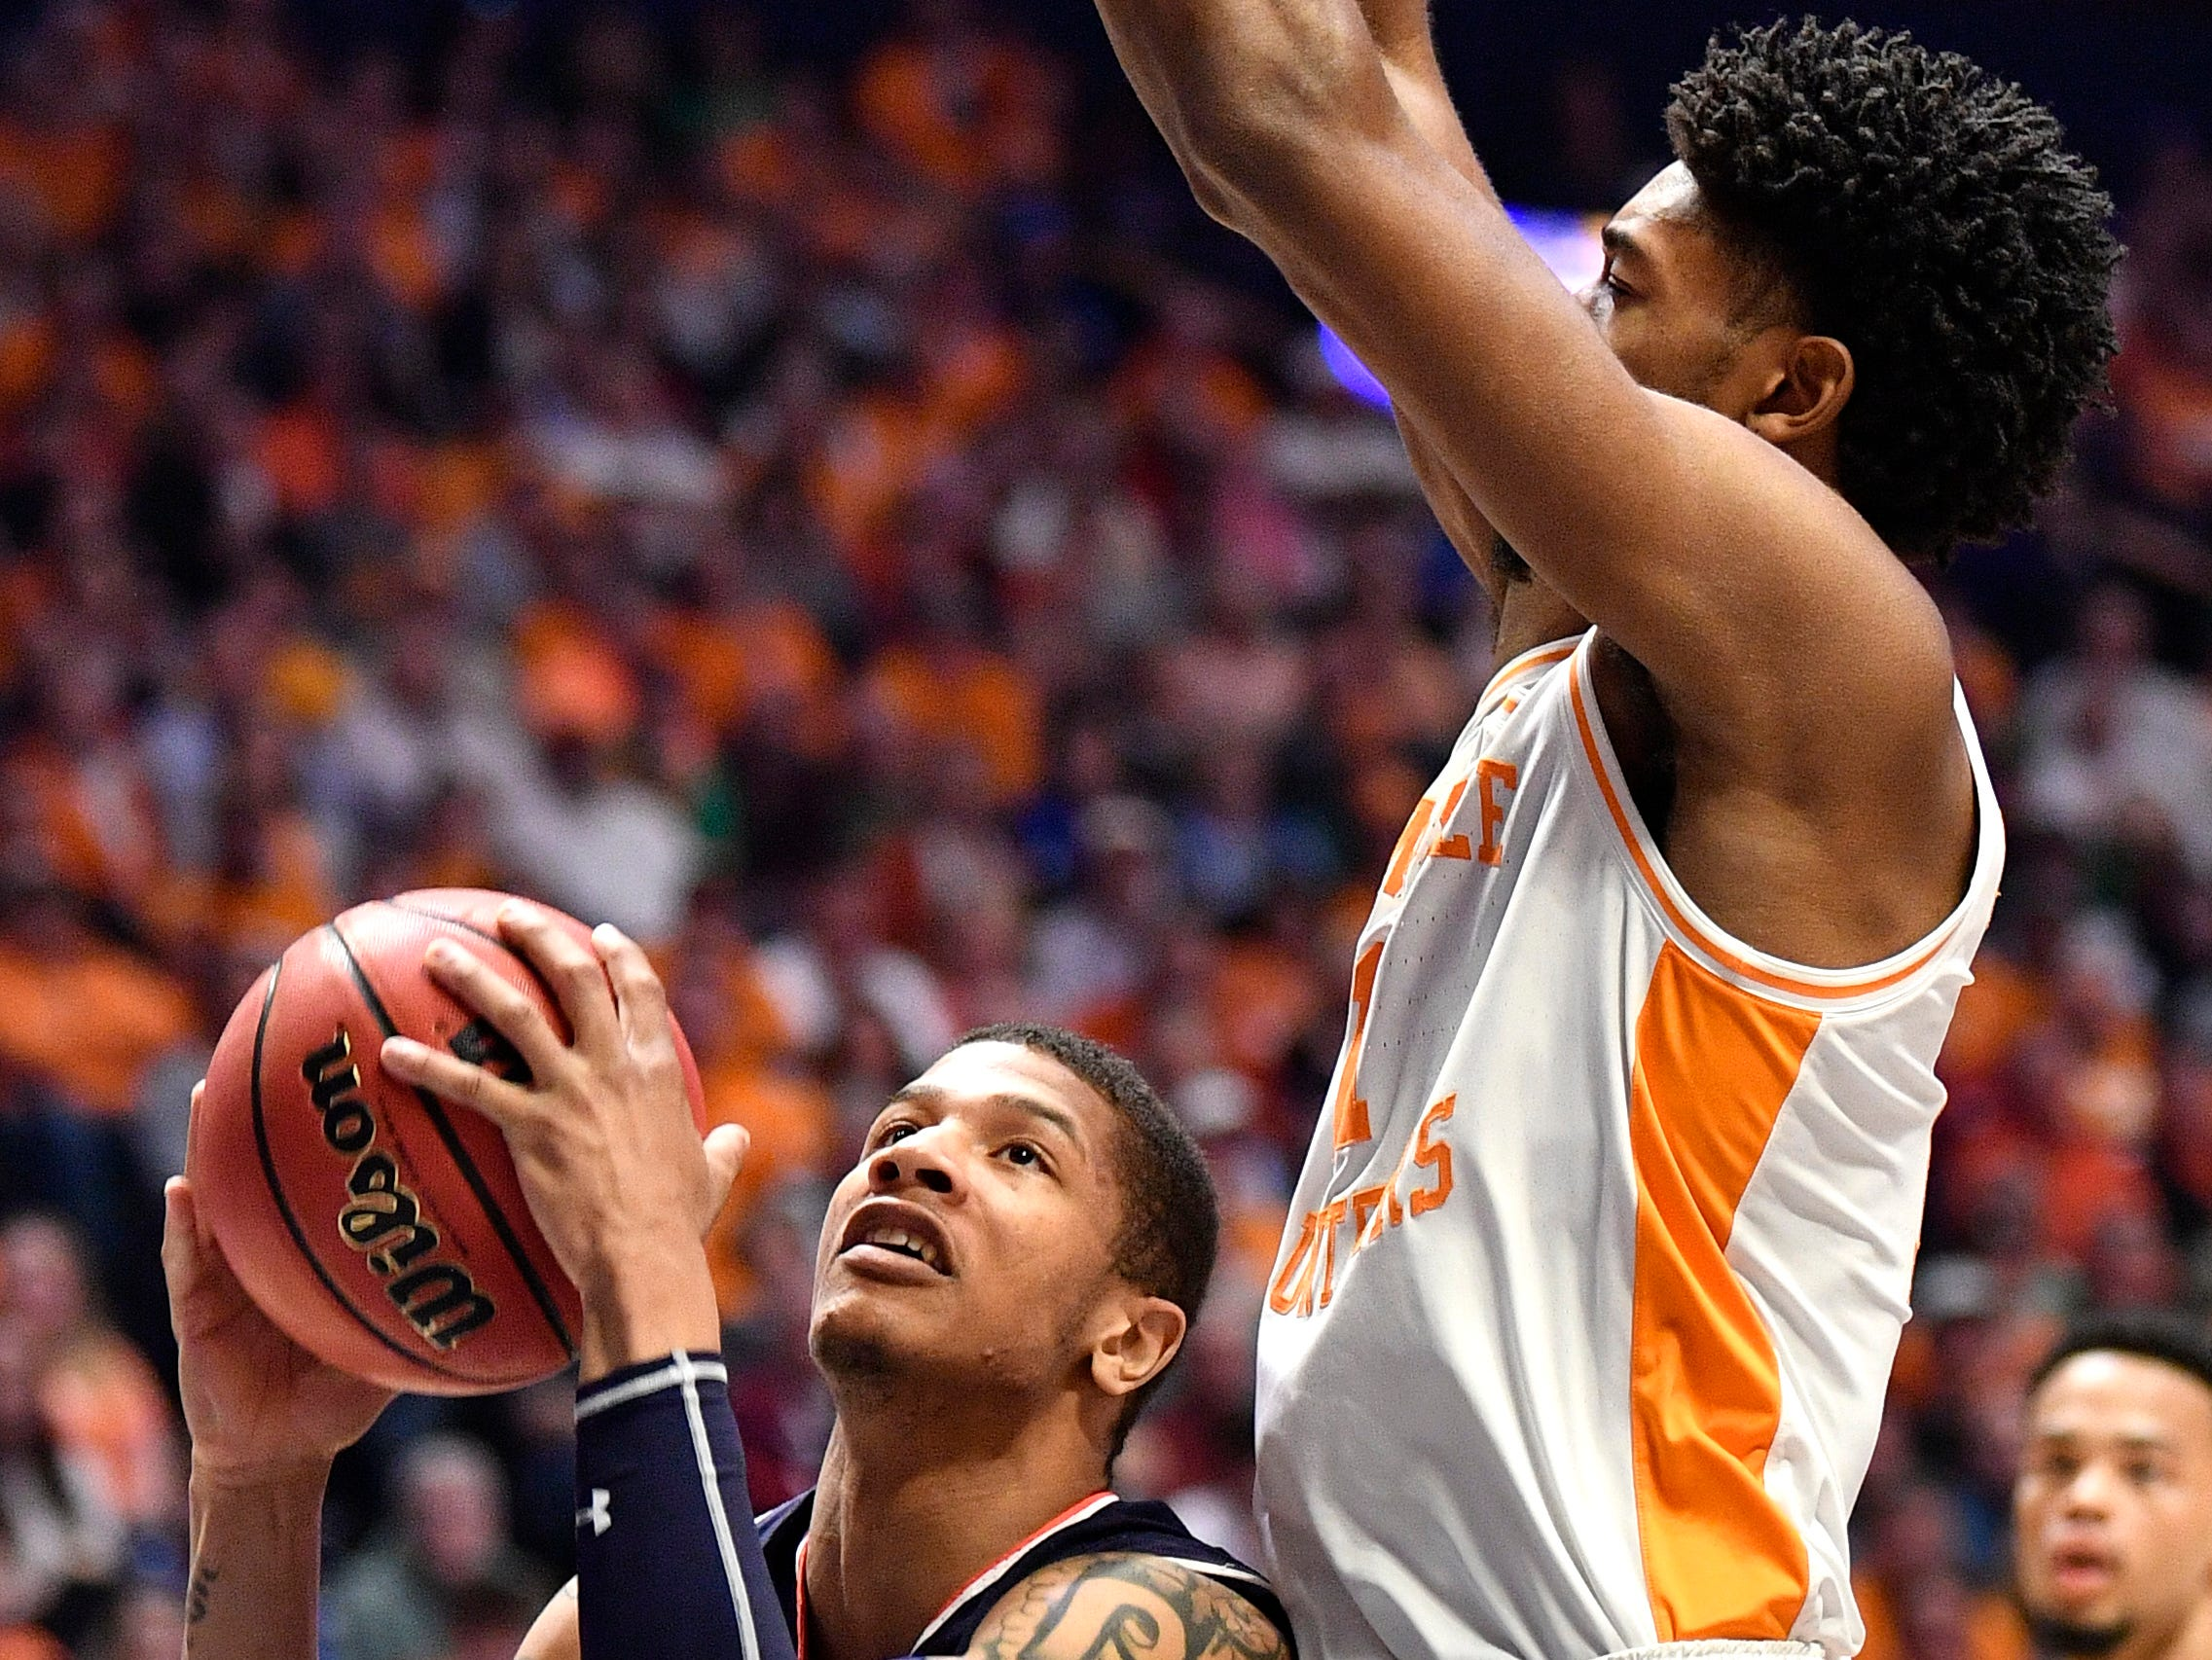 Auburn guard Samir Doughty (10) tries to shoot defended by Tennessee forward Kyle Alexander (11) during the first half of the SEC Men's Basketball Tournament championship game at Bridgestone Arena in Nashville, Tenn., Sunday, March 17, 2019.